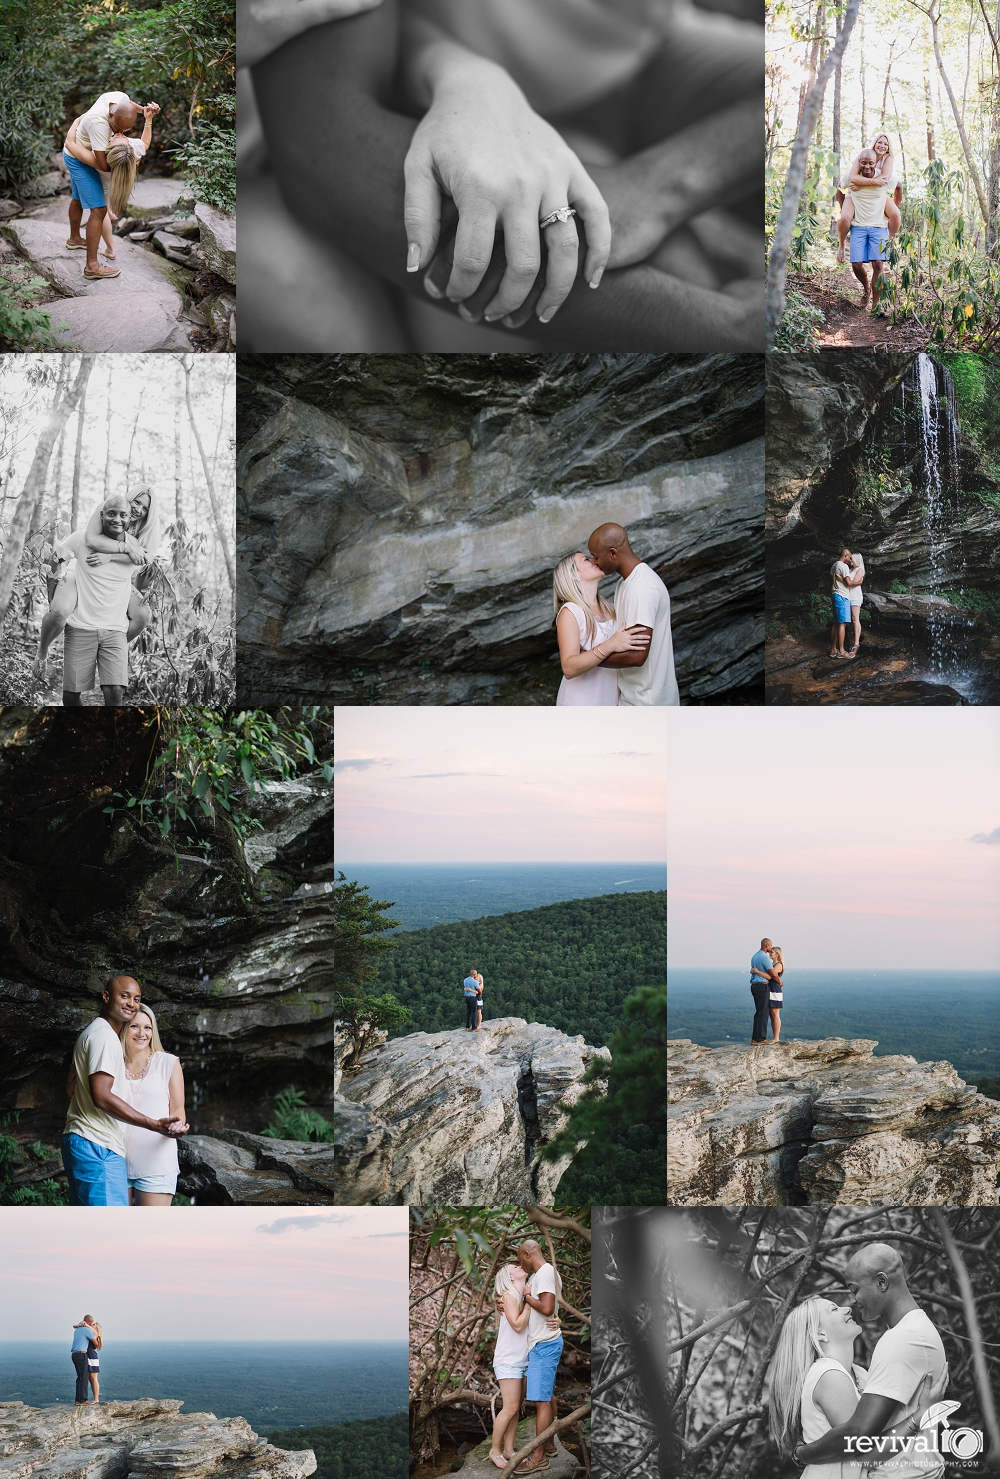 Vanessa + Patrick's Engagement Adventure at Hanging Rock State Park by Revival Photography www.revivalphotography.com